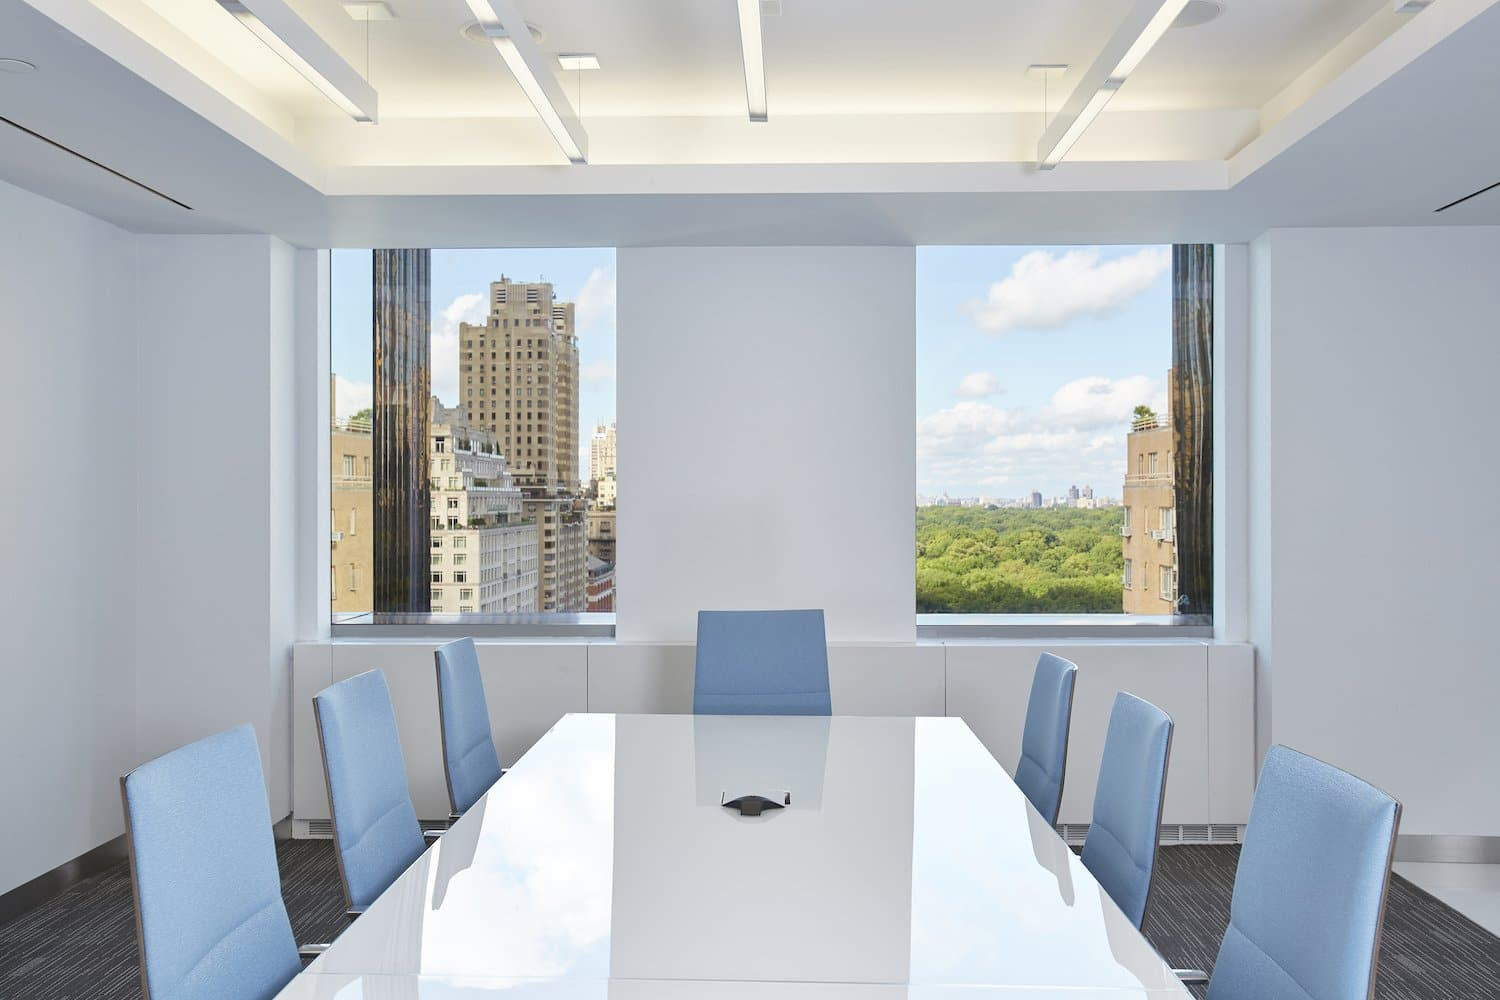 Meeting room with two windows looking out to central park